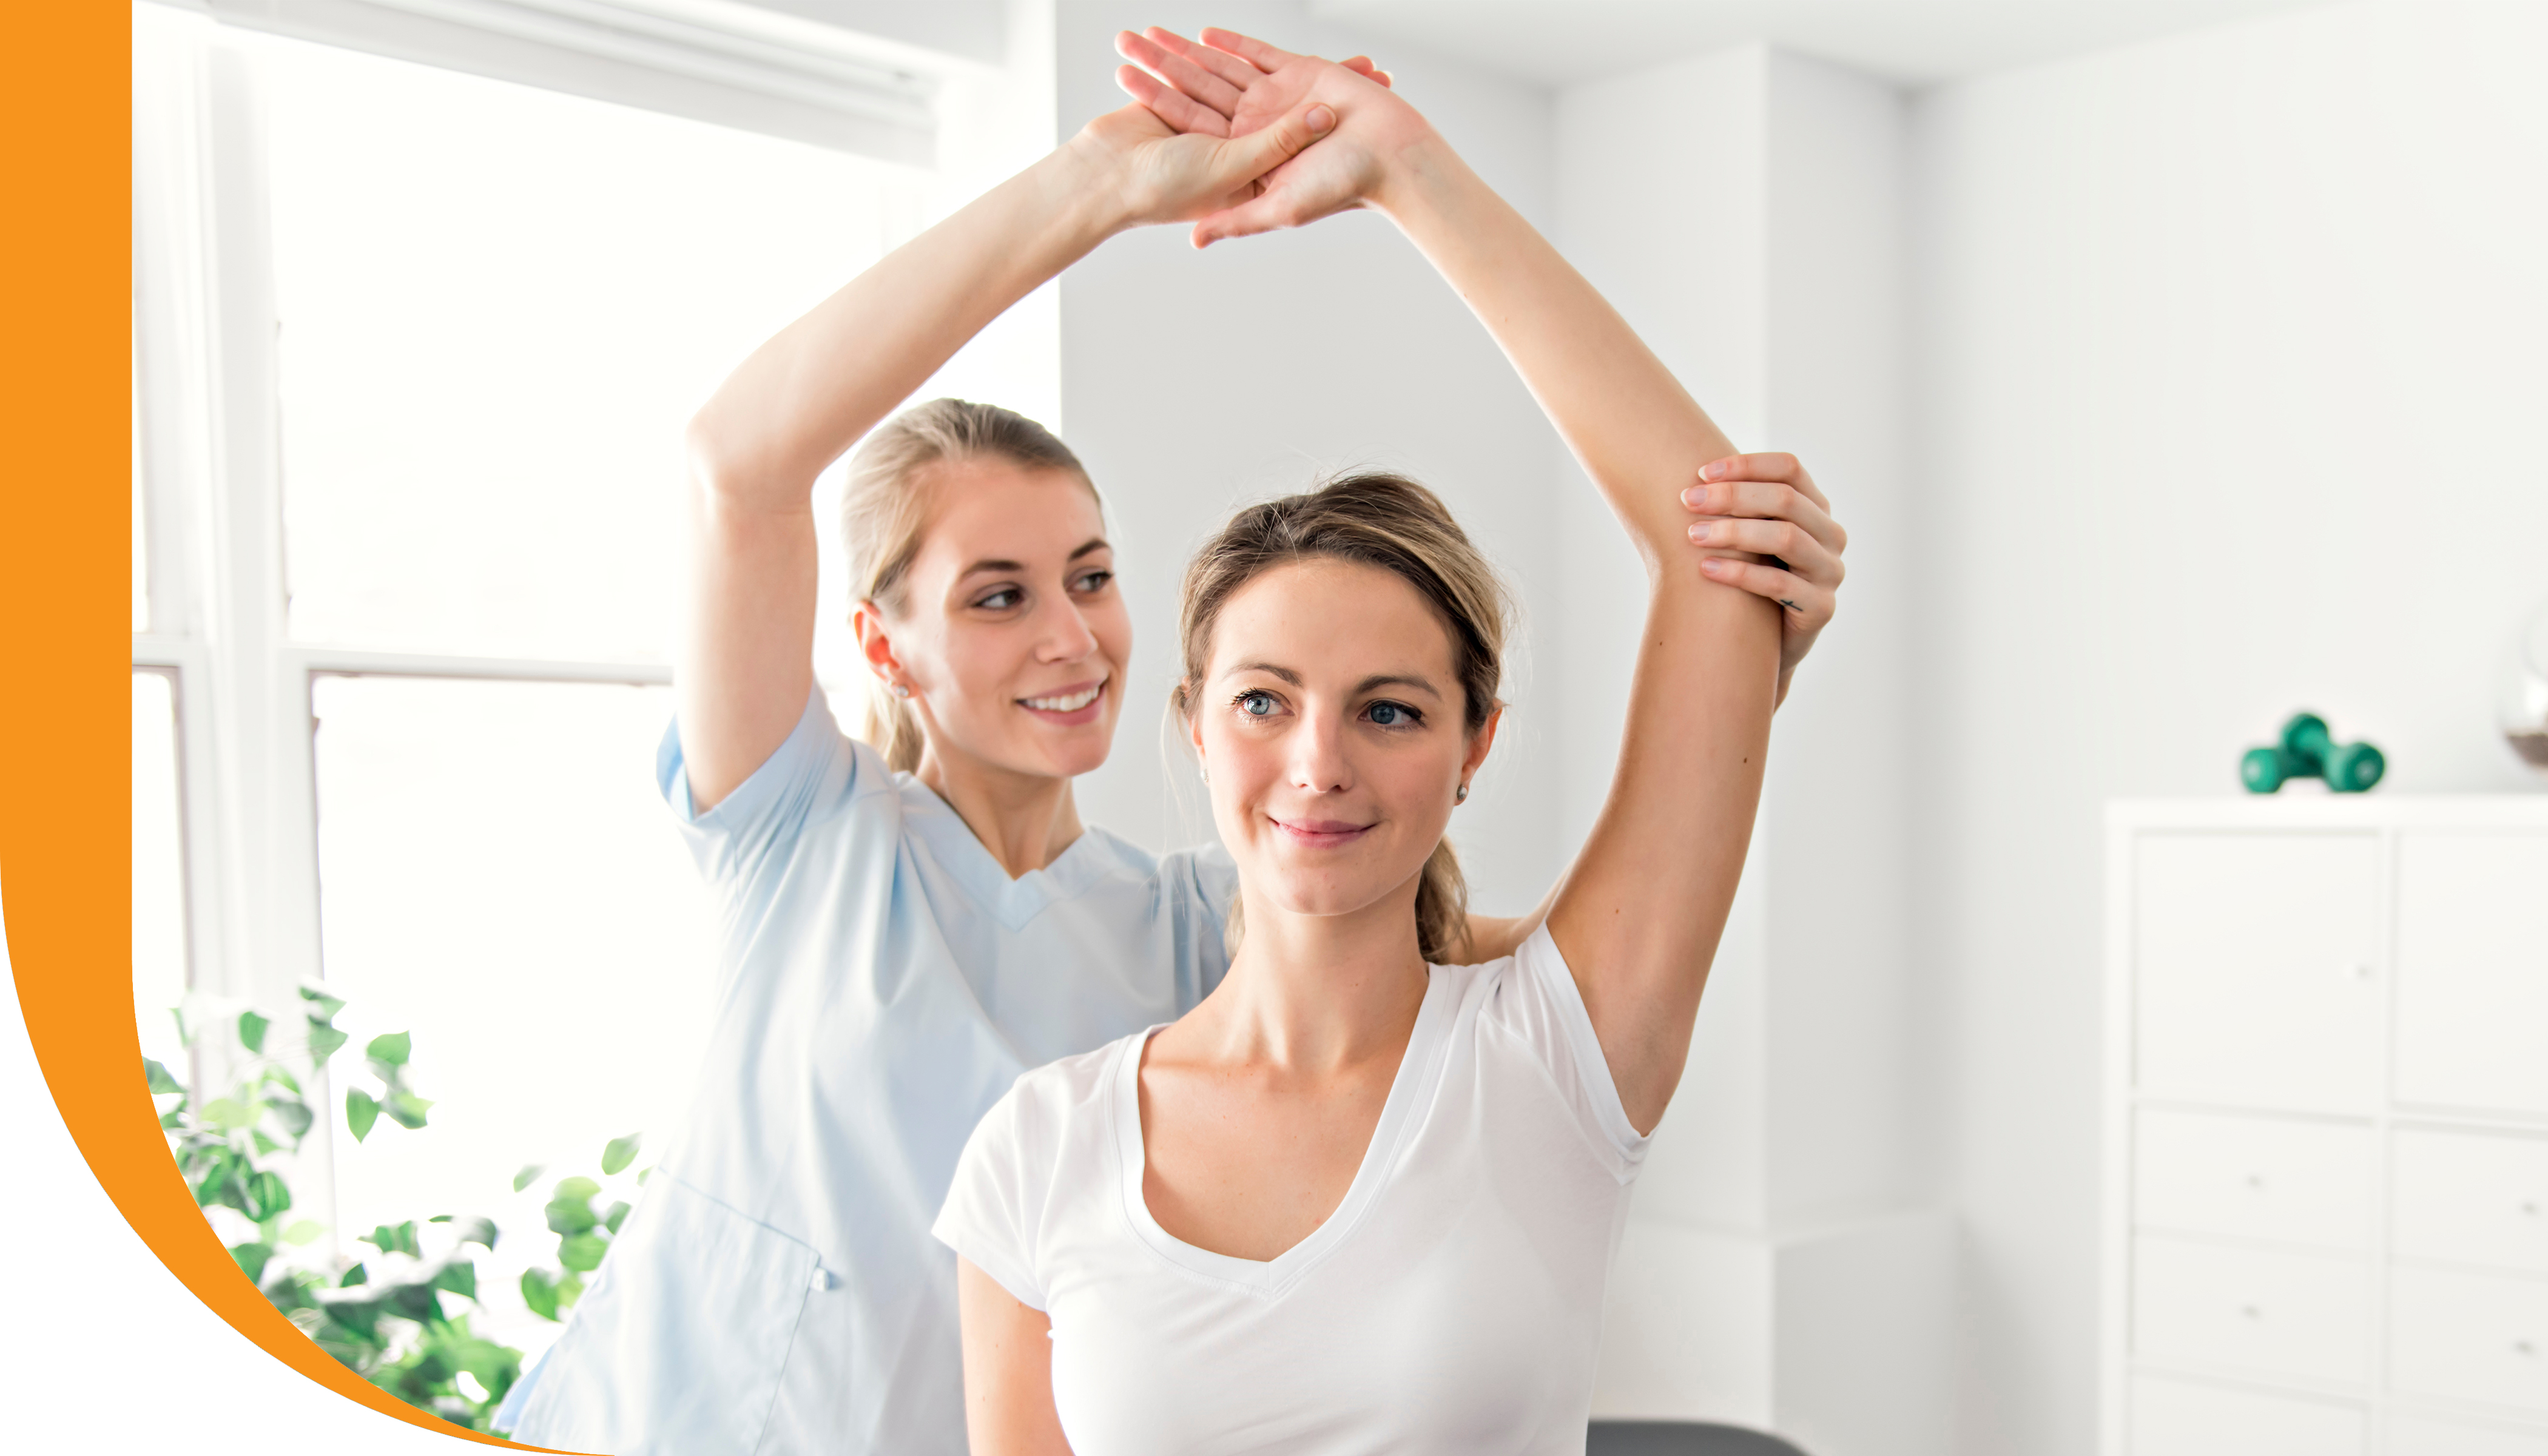 A patient in a work conditioning program receiving manual therapy from a physiotherapist.